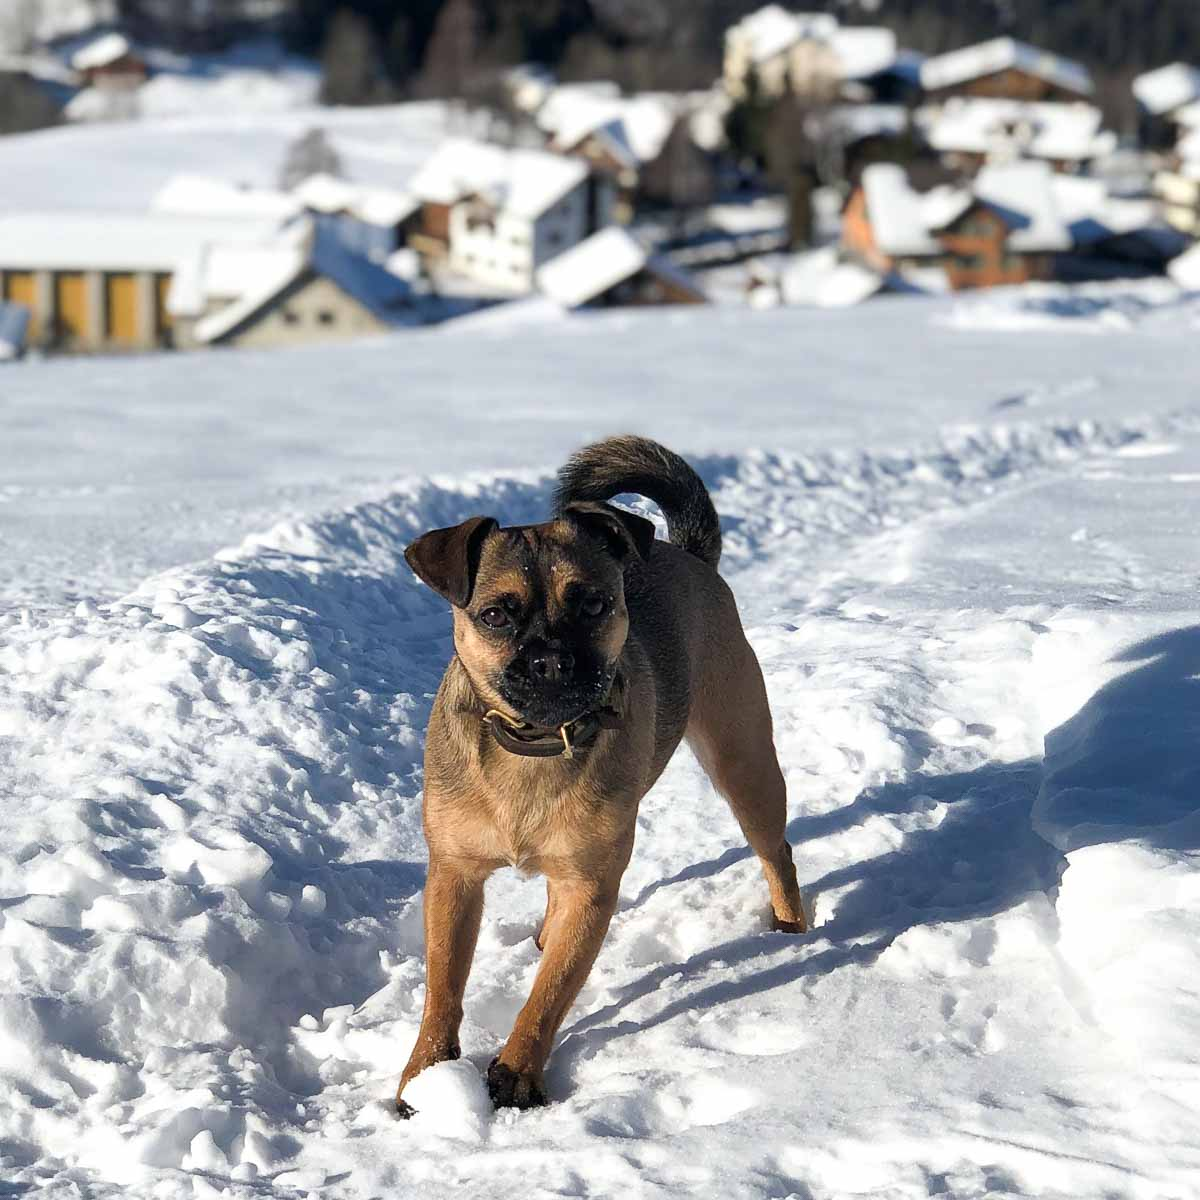 #Hertha The Dog im Schnee